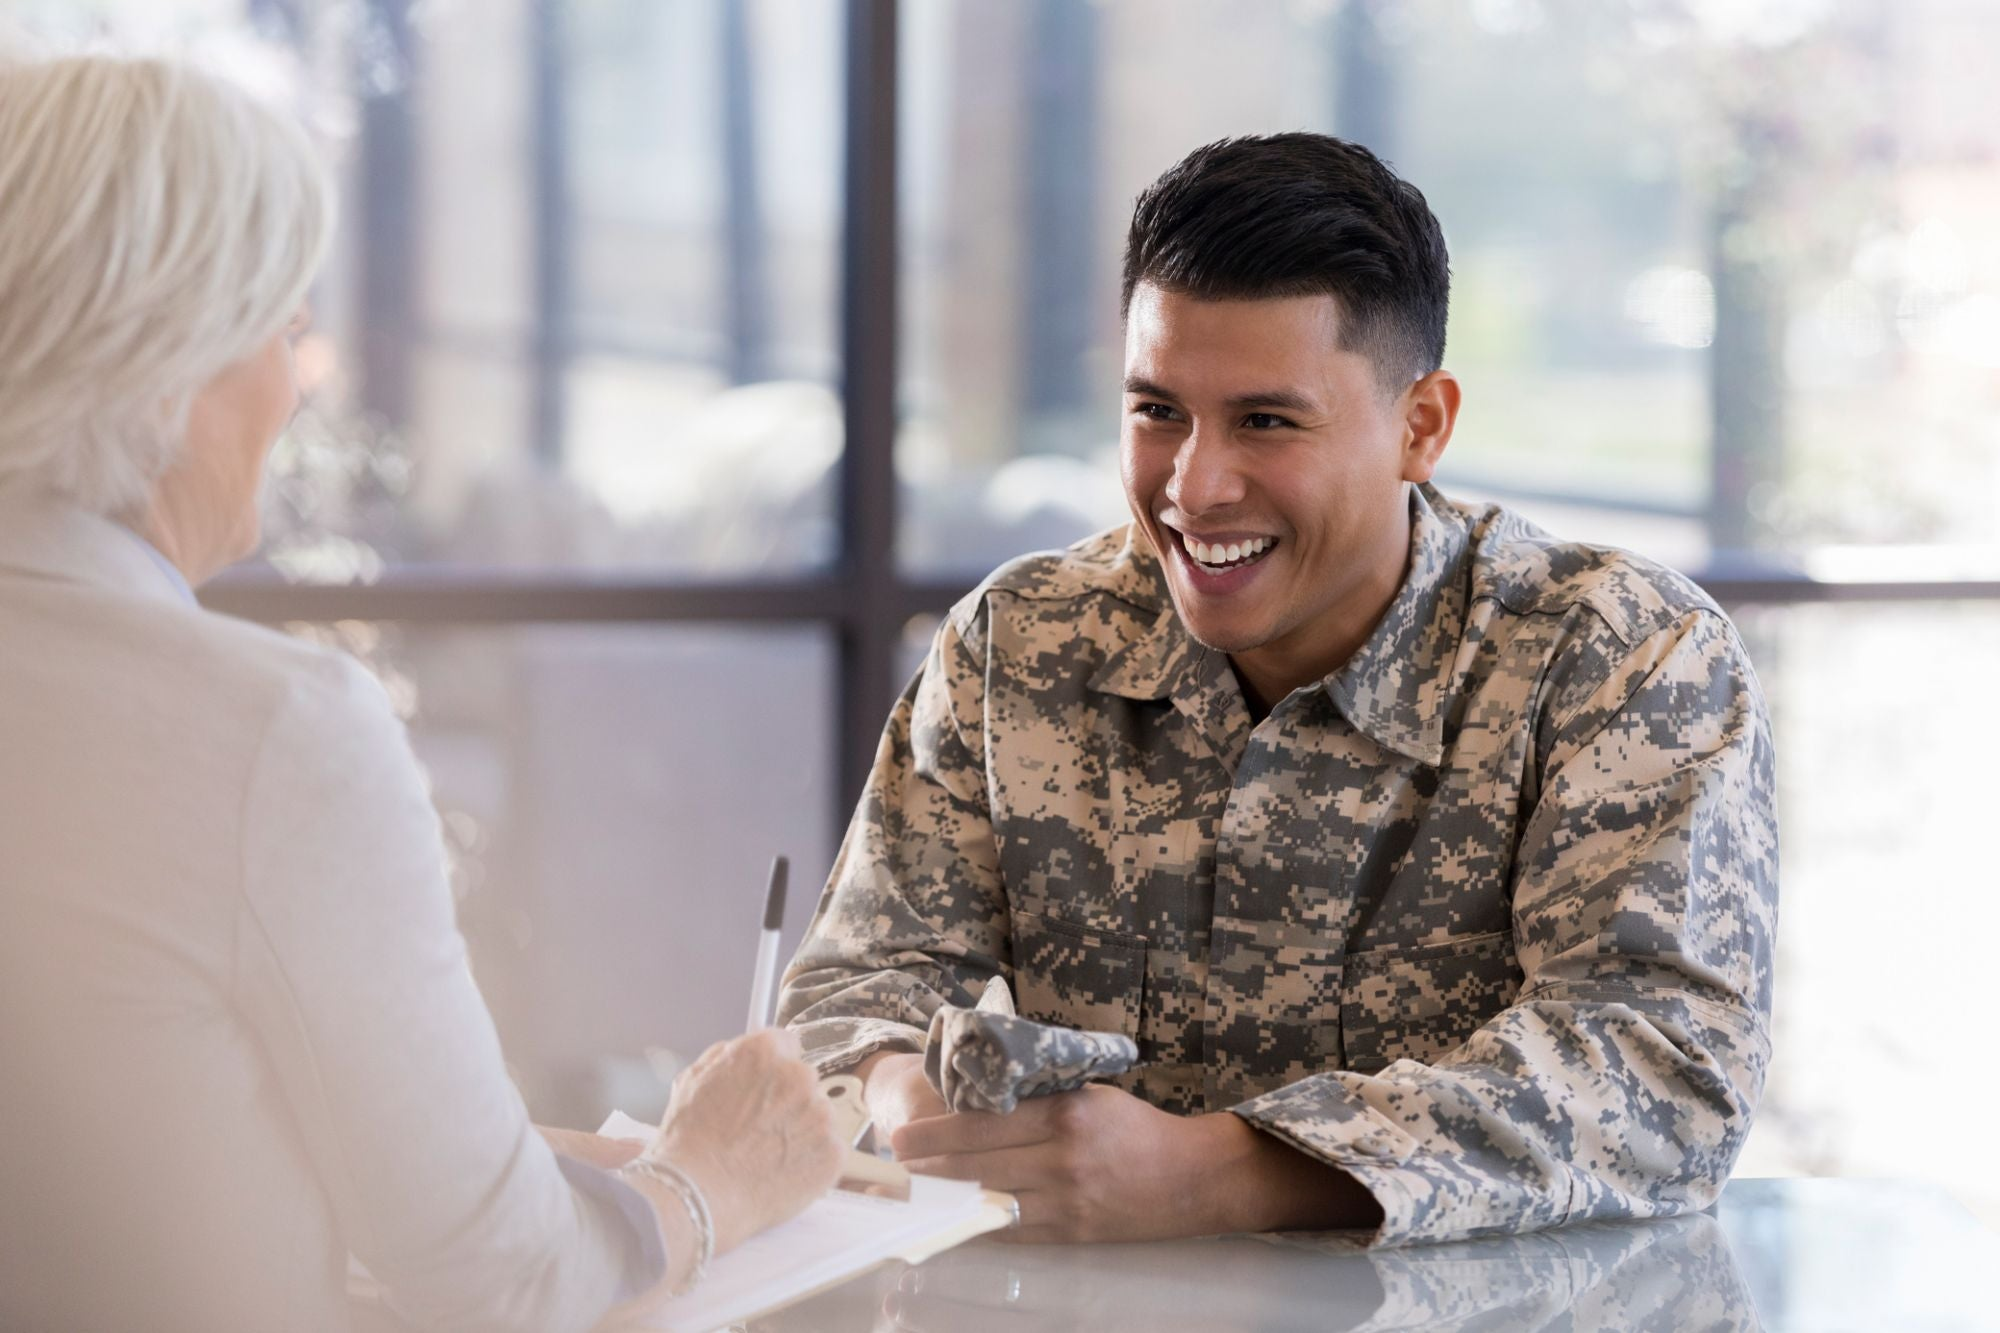 entrepreneur.com - Carlos Perez - 3 Tips for Hiring Veterans and How They'll Help Your Business Thrive